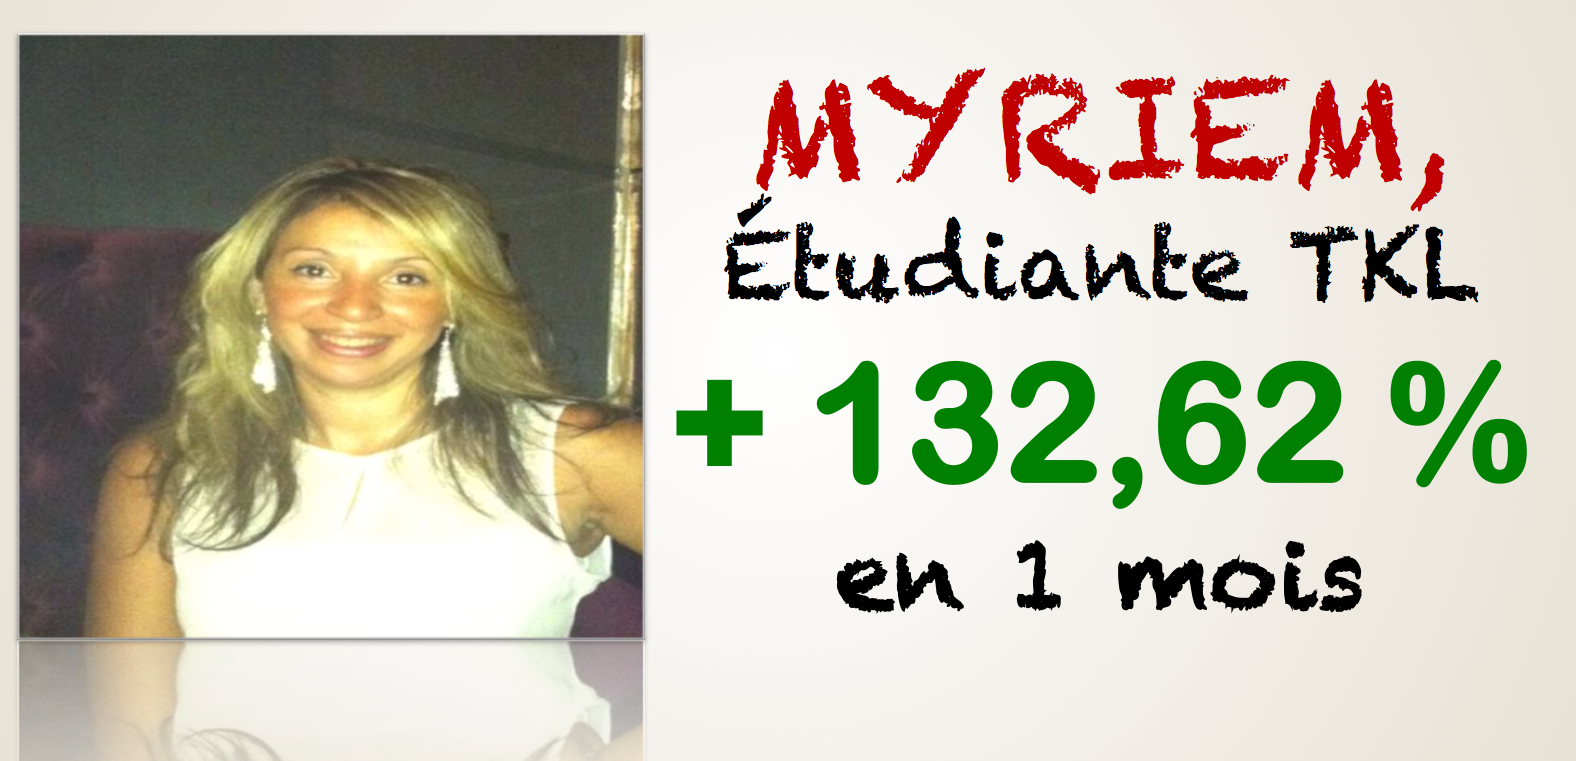 Myriem, TOP TKL Woman pour la seconde fois !